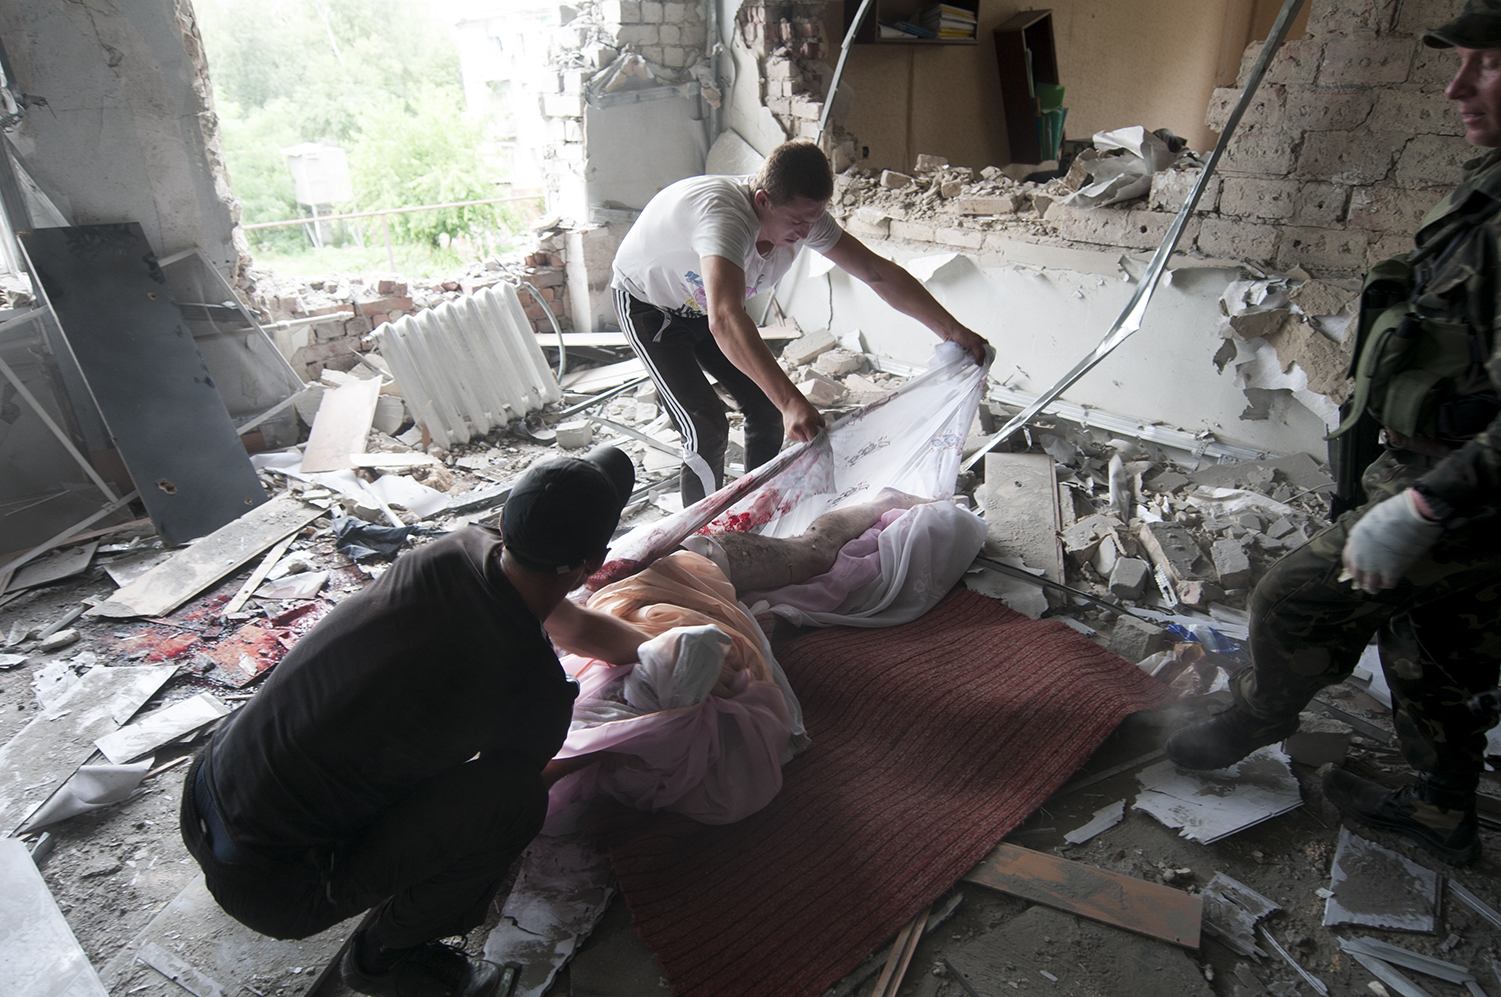 The looters struggling to move the body on a rug under the order of the separatists who arested them